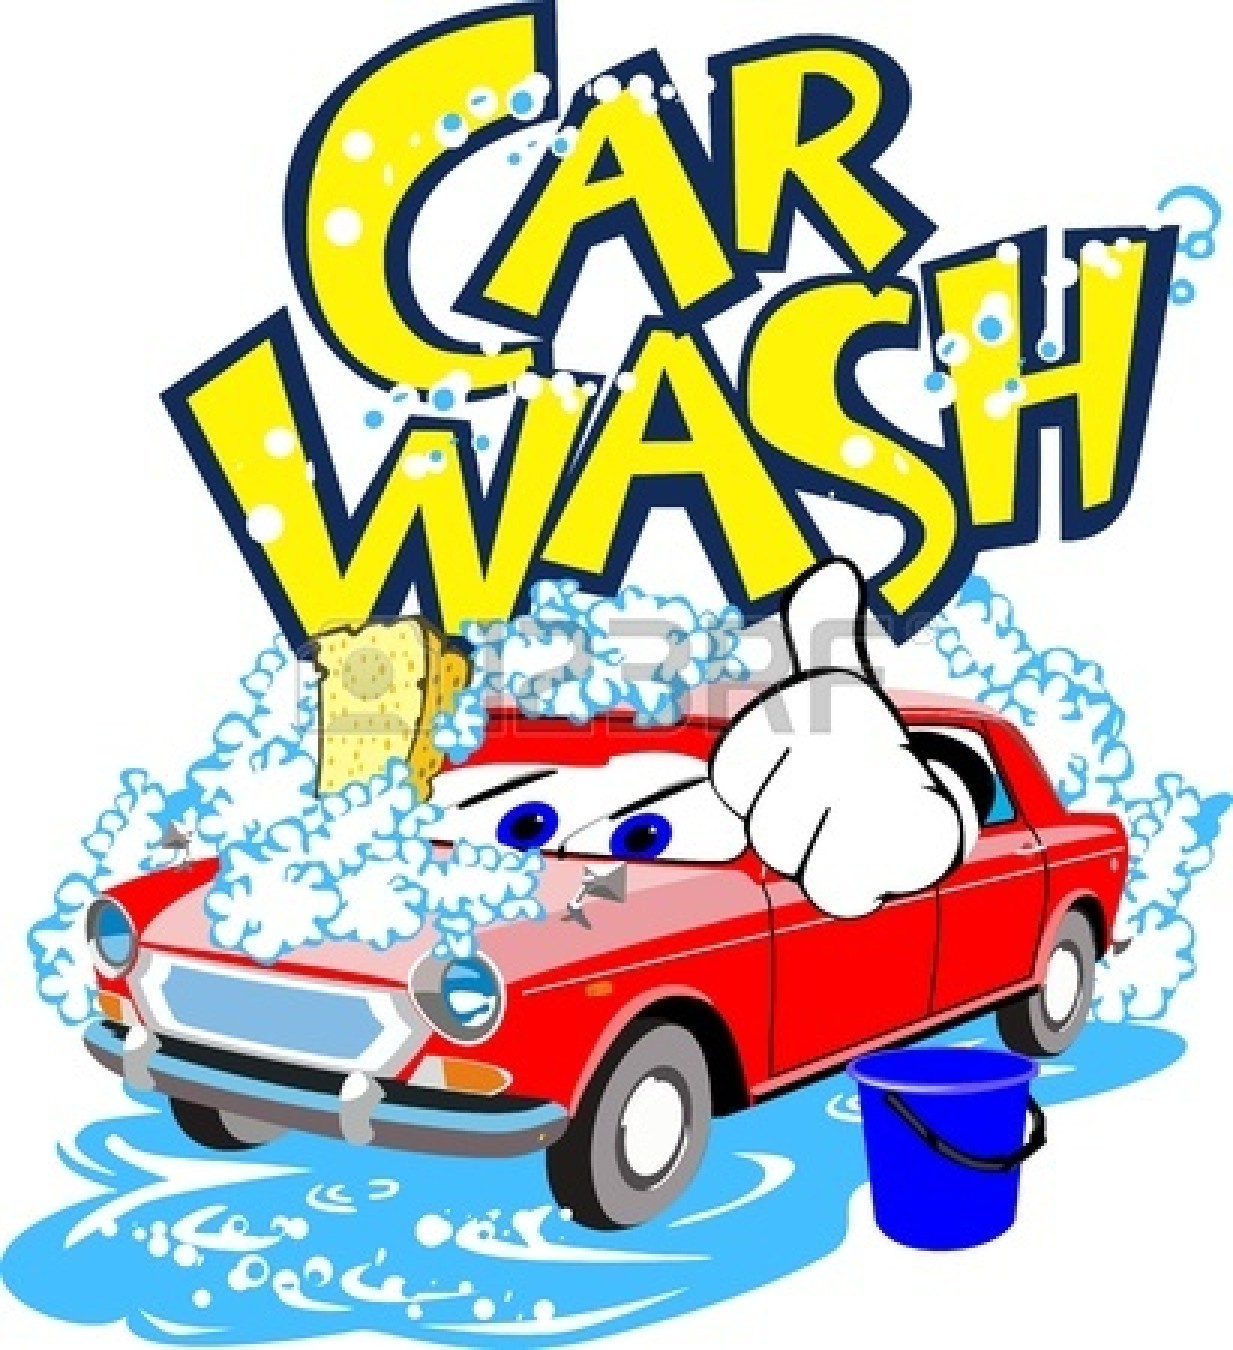 Car Wash Clipart Black And White 1423428-Car Wash Clipart Black And White 14234286 Car Wash Jpg-3